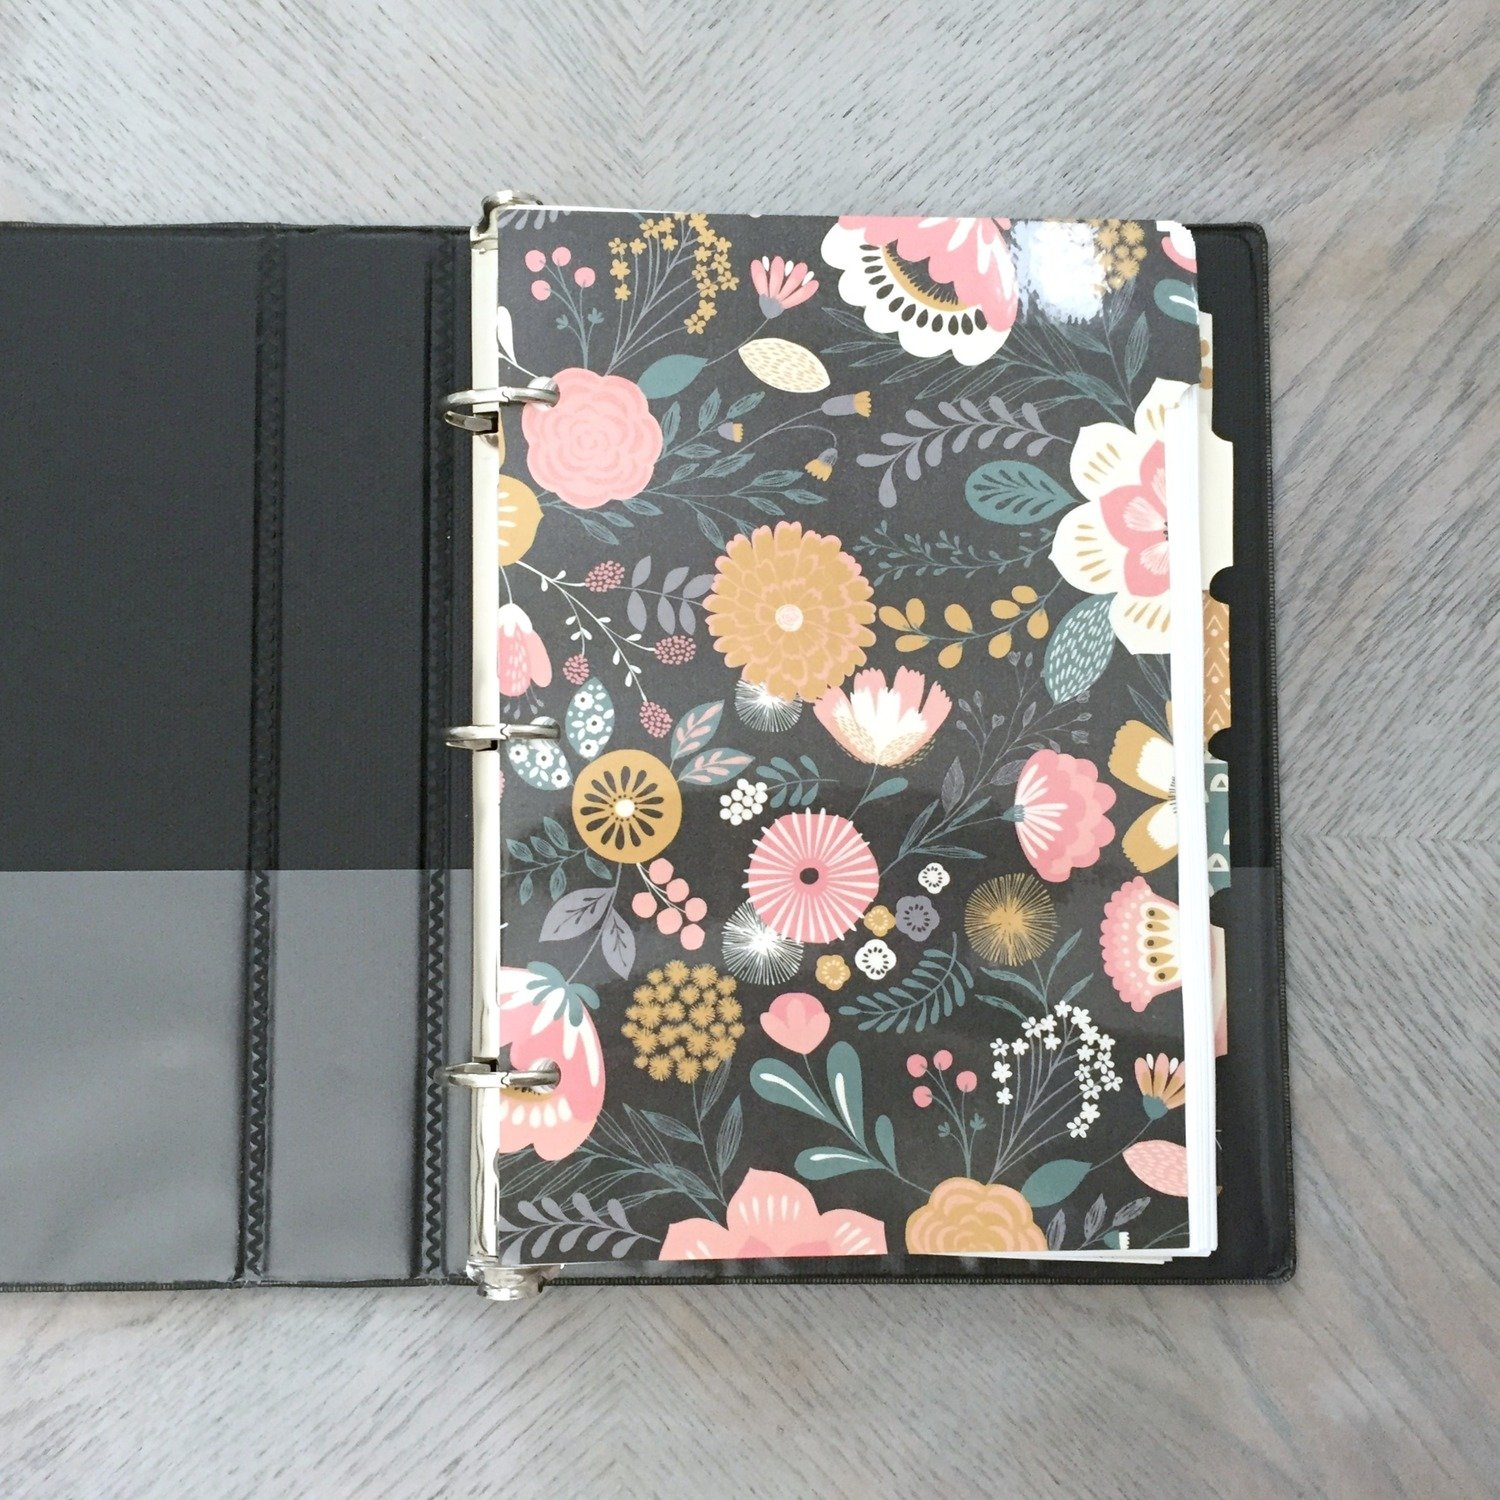 2017-2018 HM Planner, Black 3-Ring Mini-Binder, Personal Size Pages (5.5